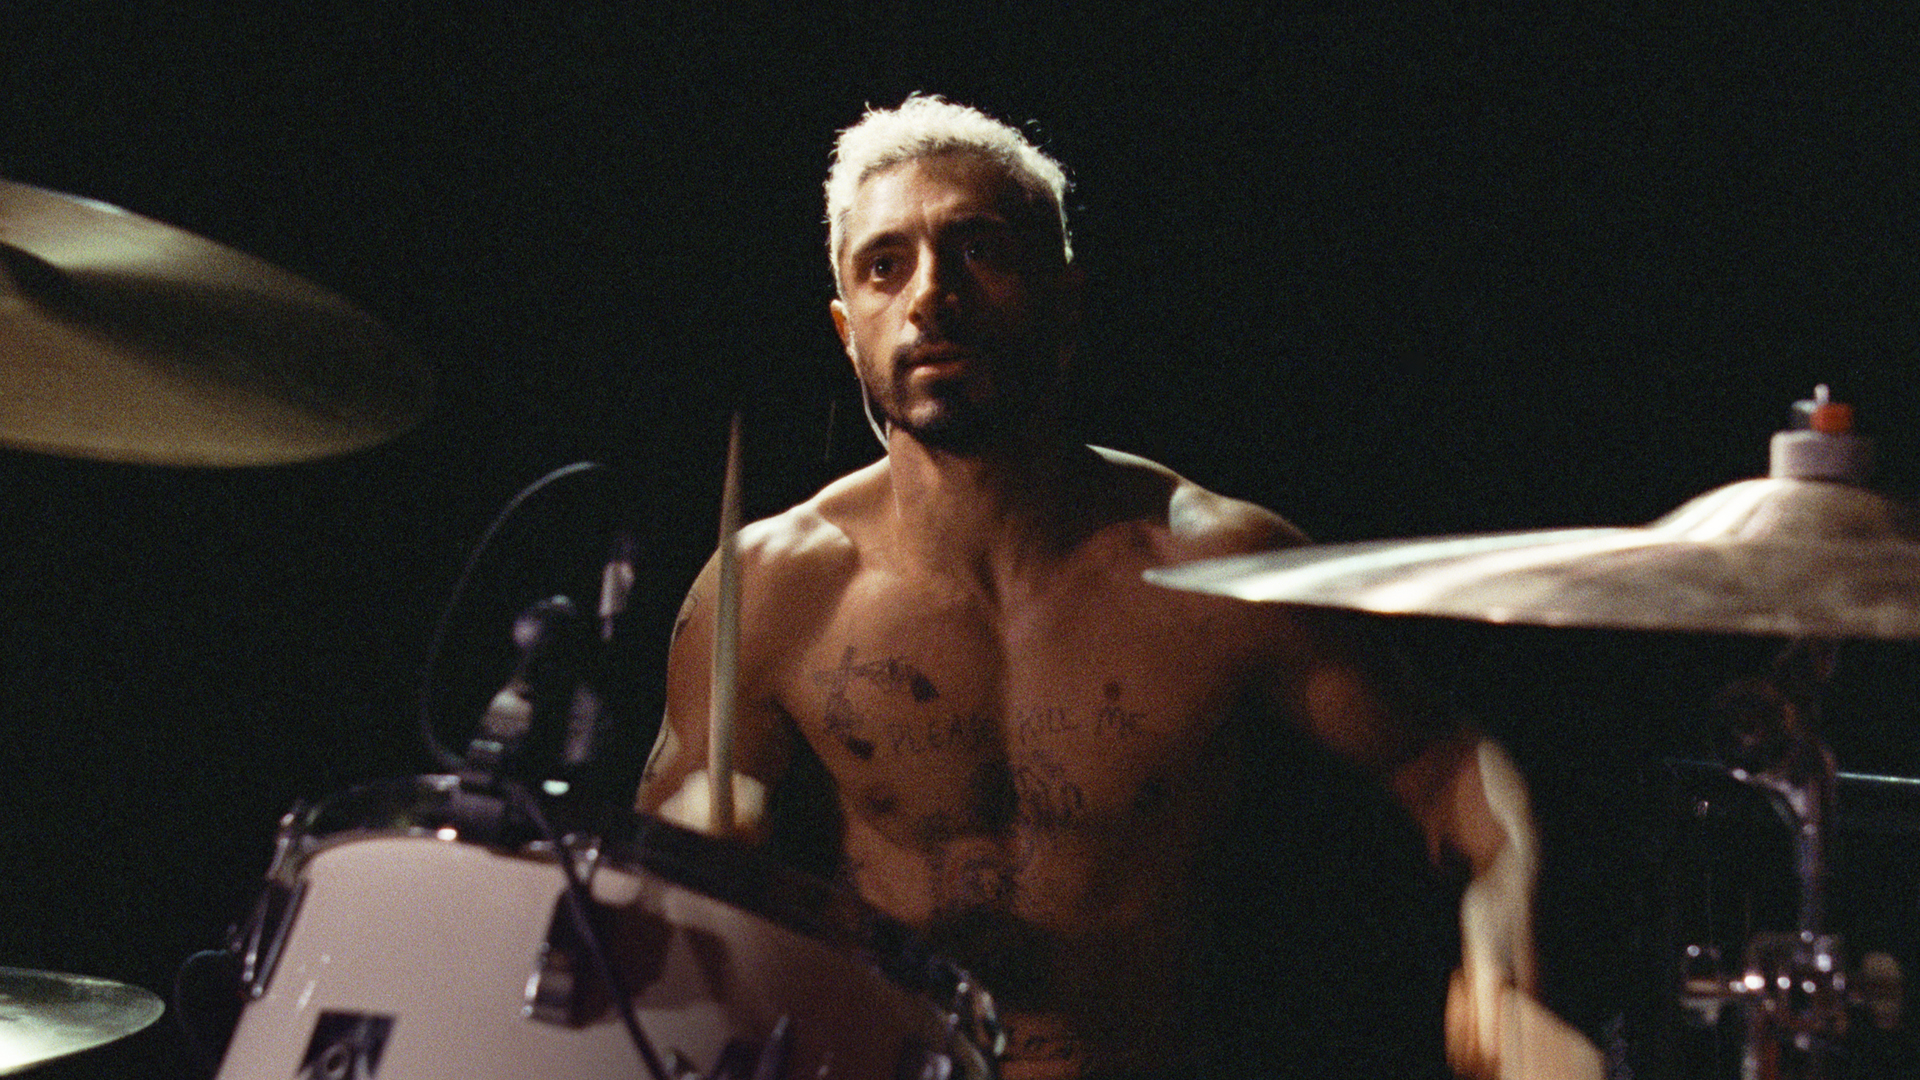 Image is from the film Sound of Metal (2019). A shirtless man, with a chest covered in tattoos, plays the drums. He looks angry.